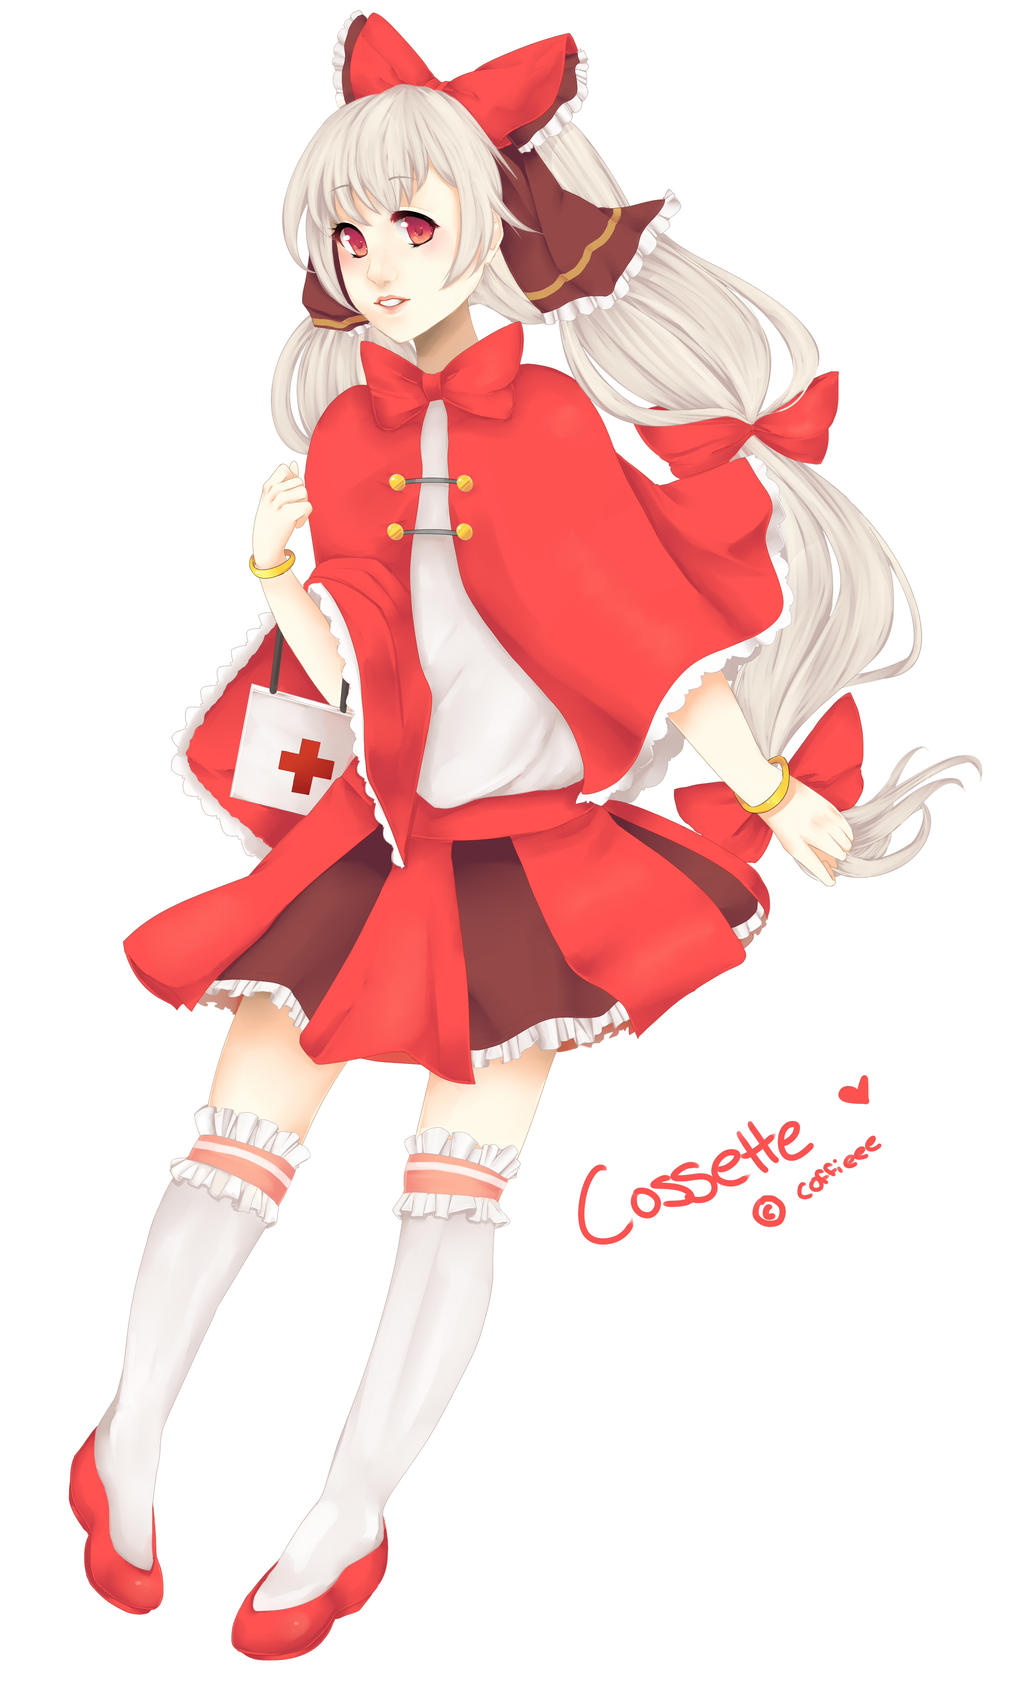 Cossette by daypoo